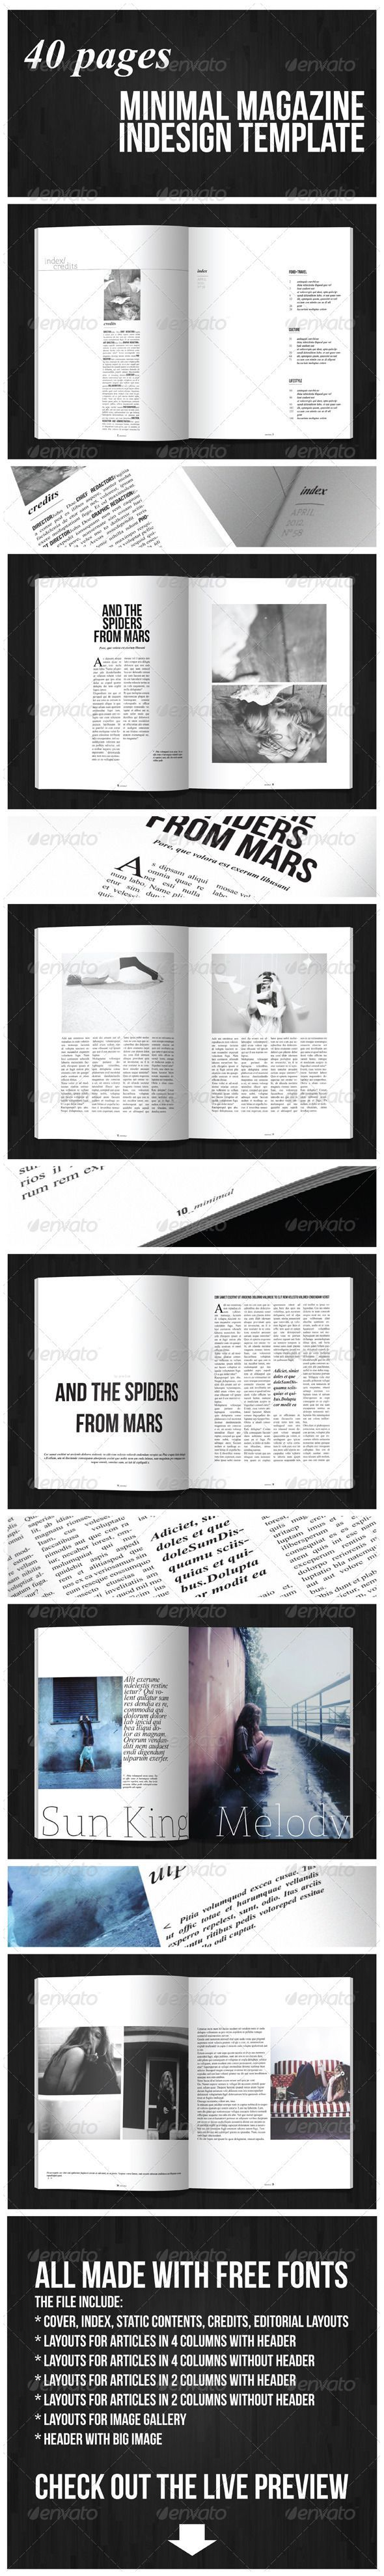 40 Pages Minimal Magazine GraphicRiver Item for Sale